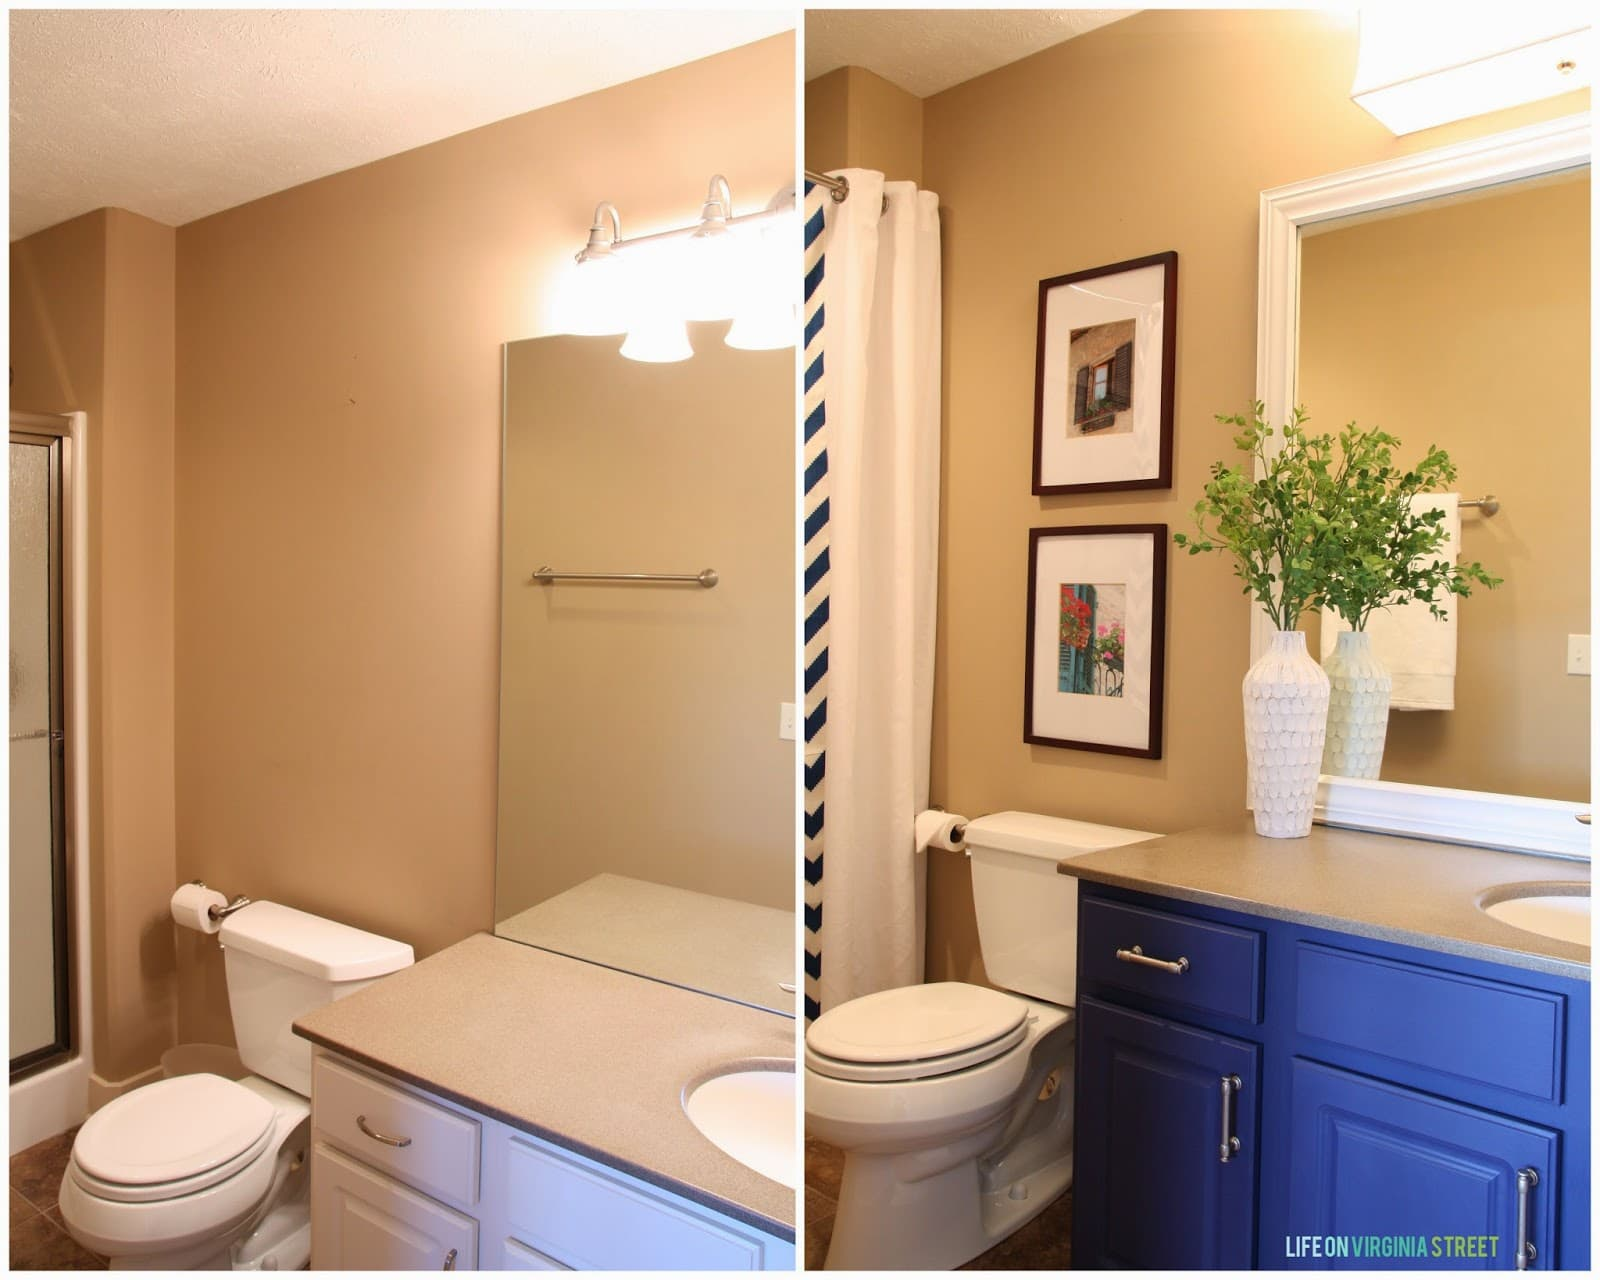 Phenomenal Guest Bathroom Tutorials Lighting Framing A Builder Grade Best Image Libraries Thycampuscom